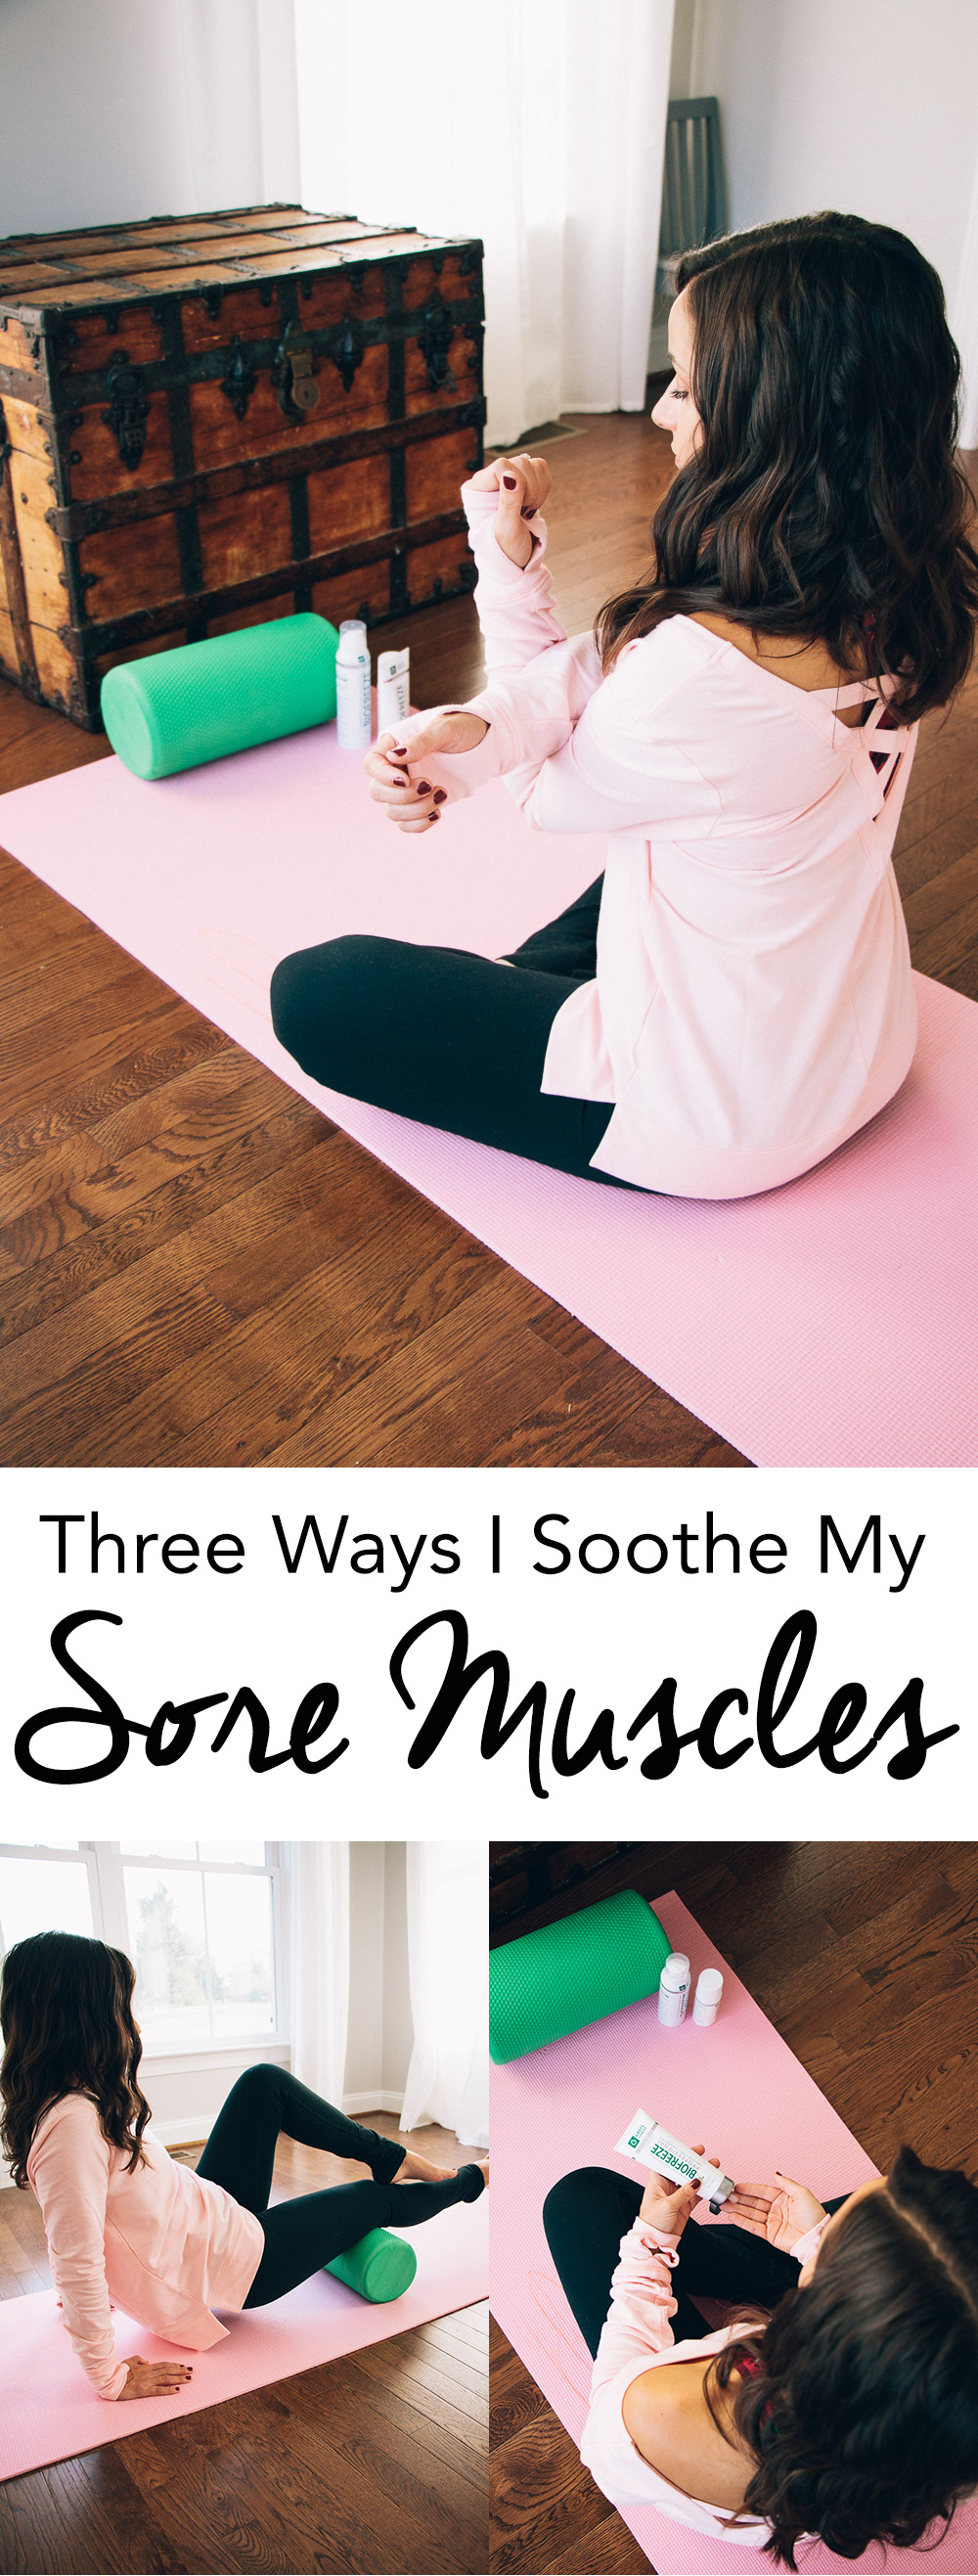 Three Ways I Soothe My Sore Muscles